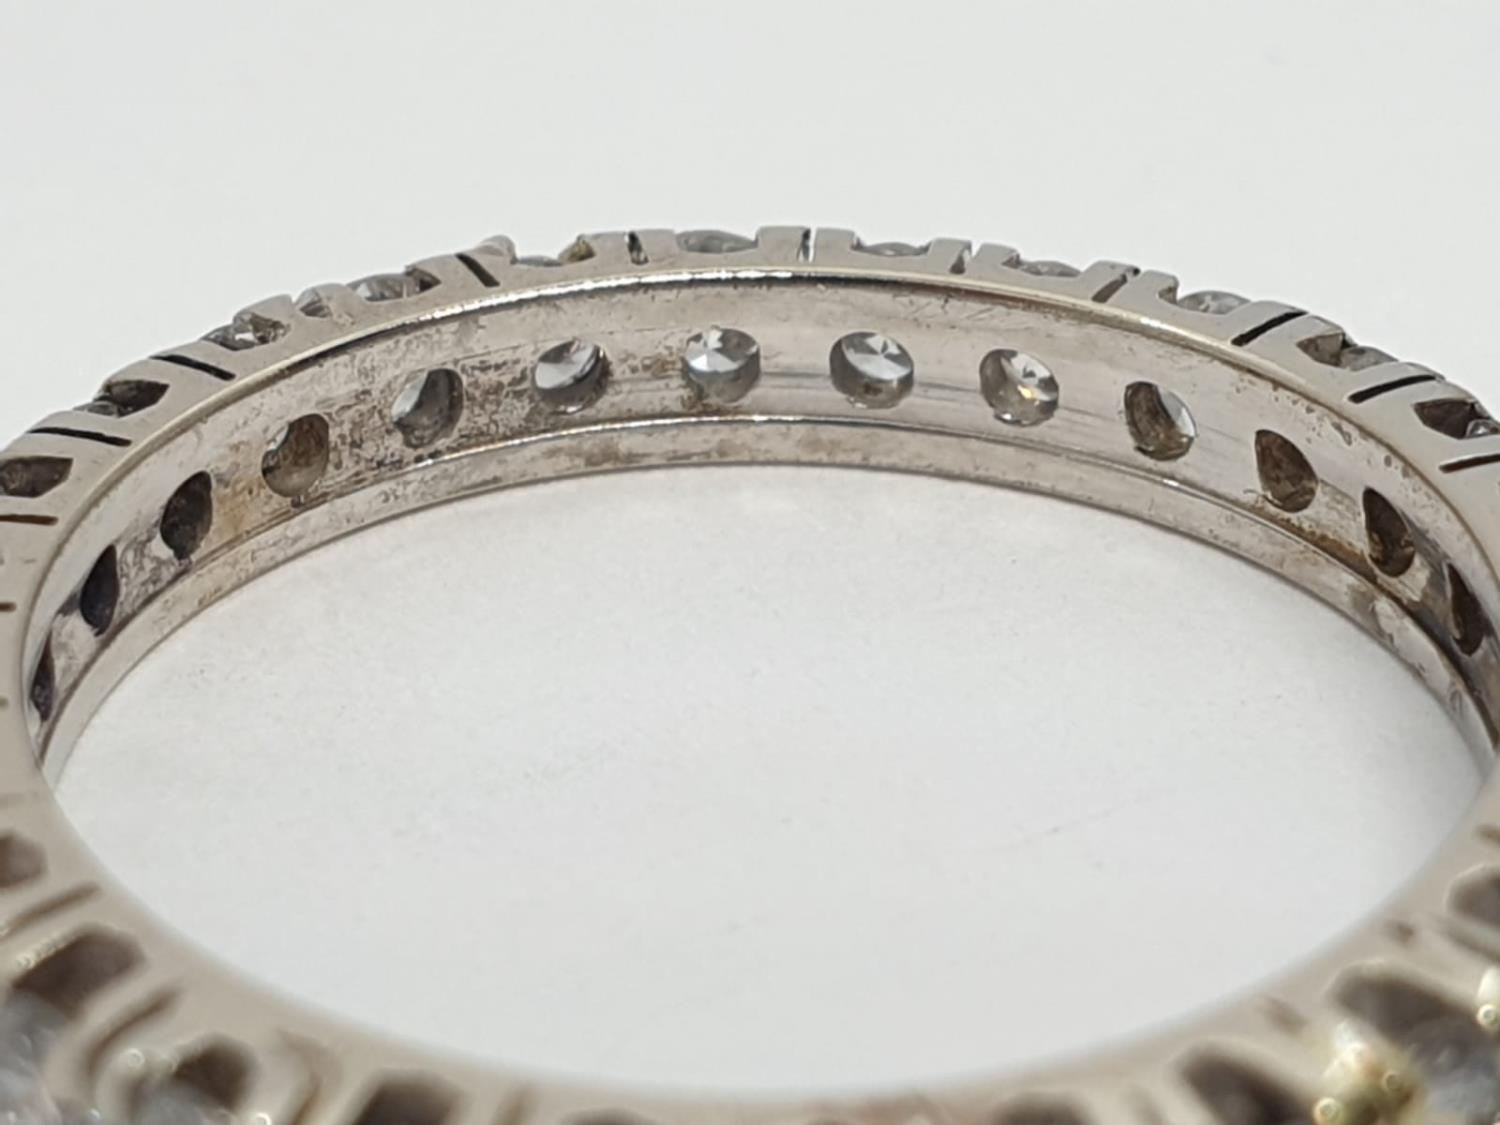 Diamond full eternity ring (tested 18ct gold), weight 2.27g and size J - Image 3 of 3